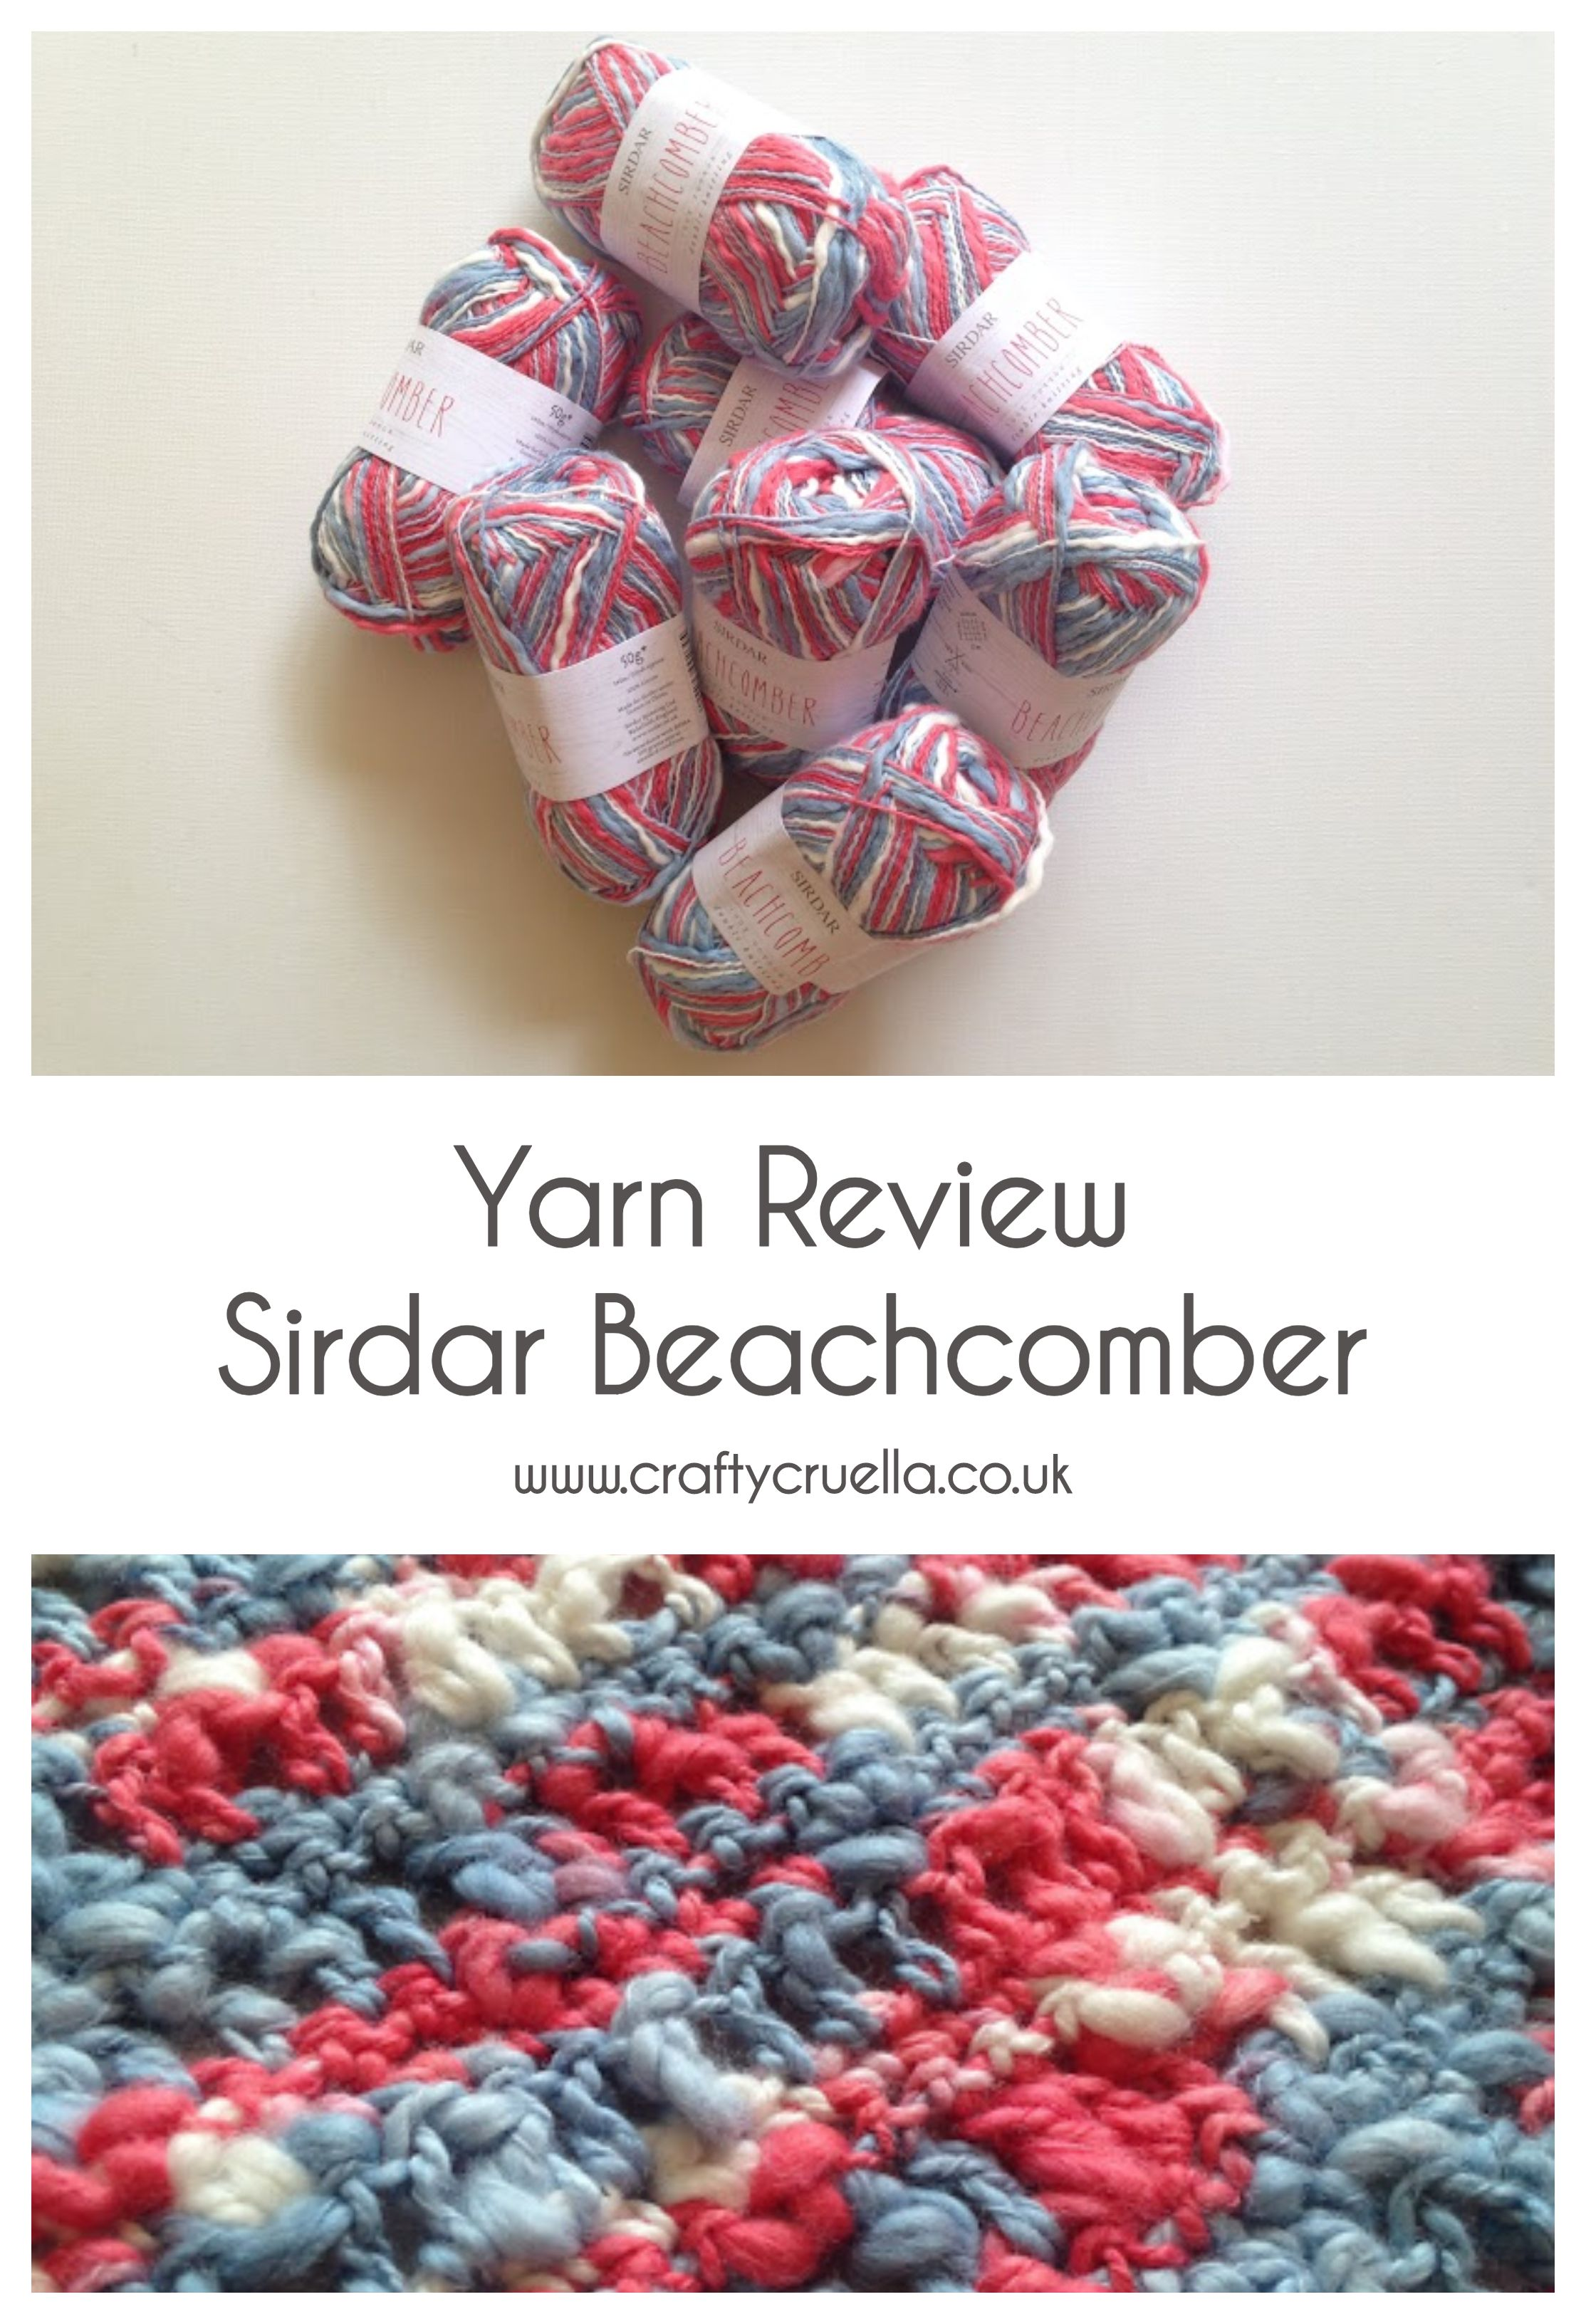 Yarn Review ~ Sirdar Beachcomber | My hobby is crochet ...